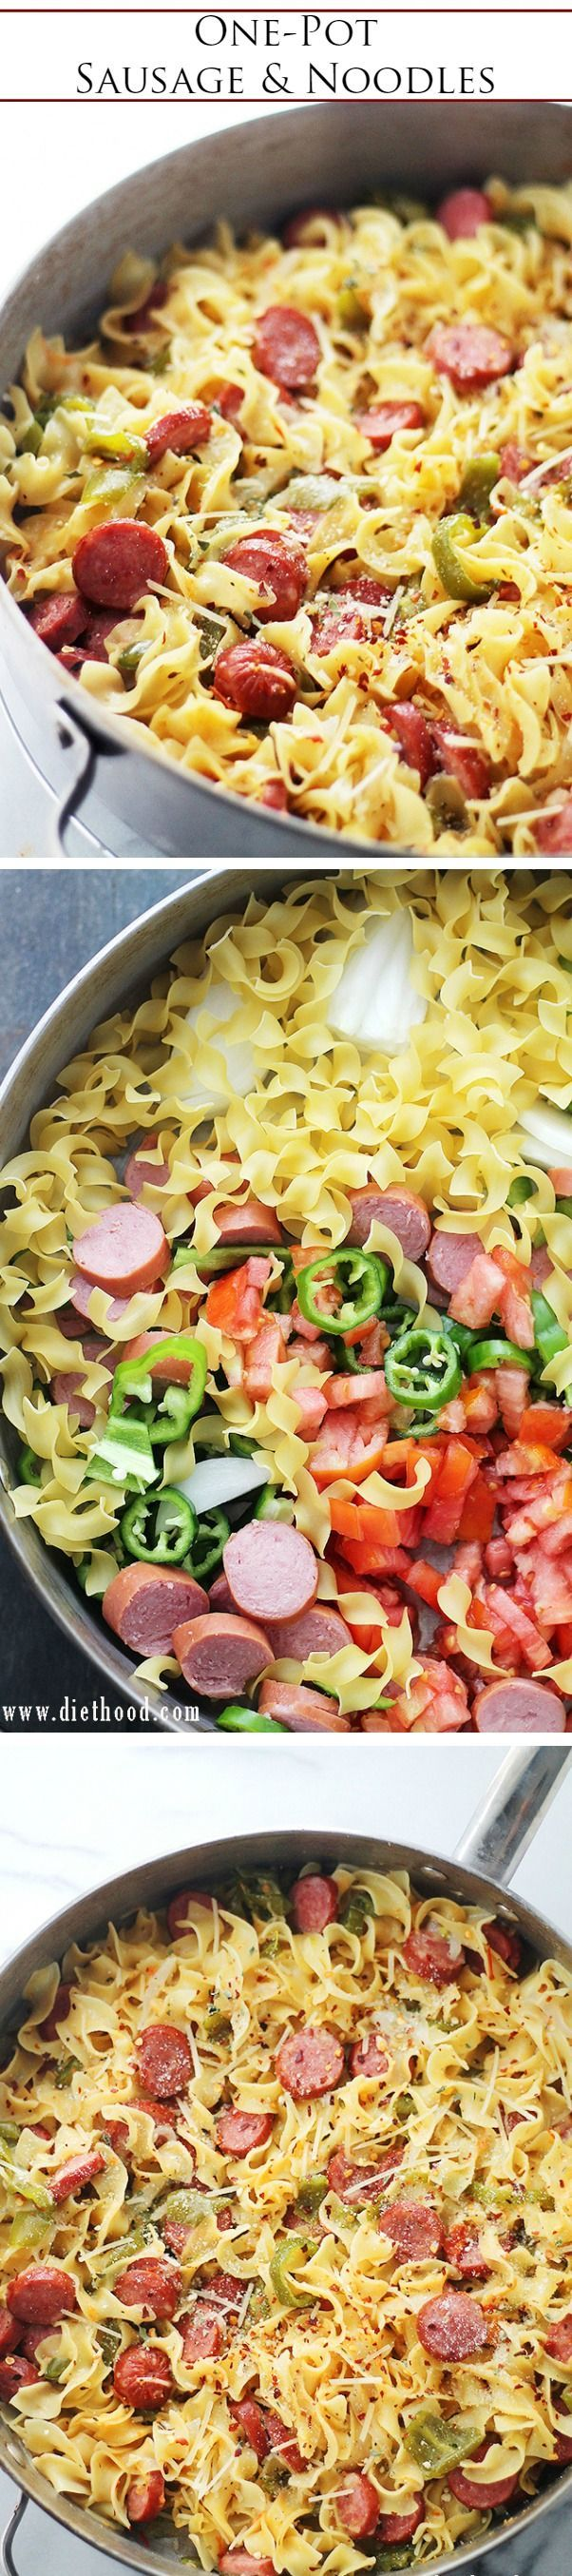 One-Pot Turkey Sausage and Noodles ~ Quick and easy, one-pot dinner with noodles, turkey sausage and fresh vegetables.